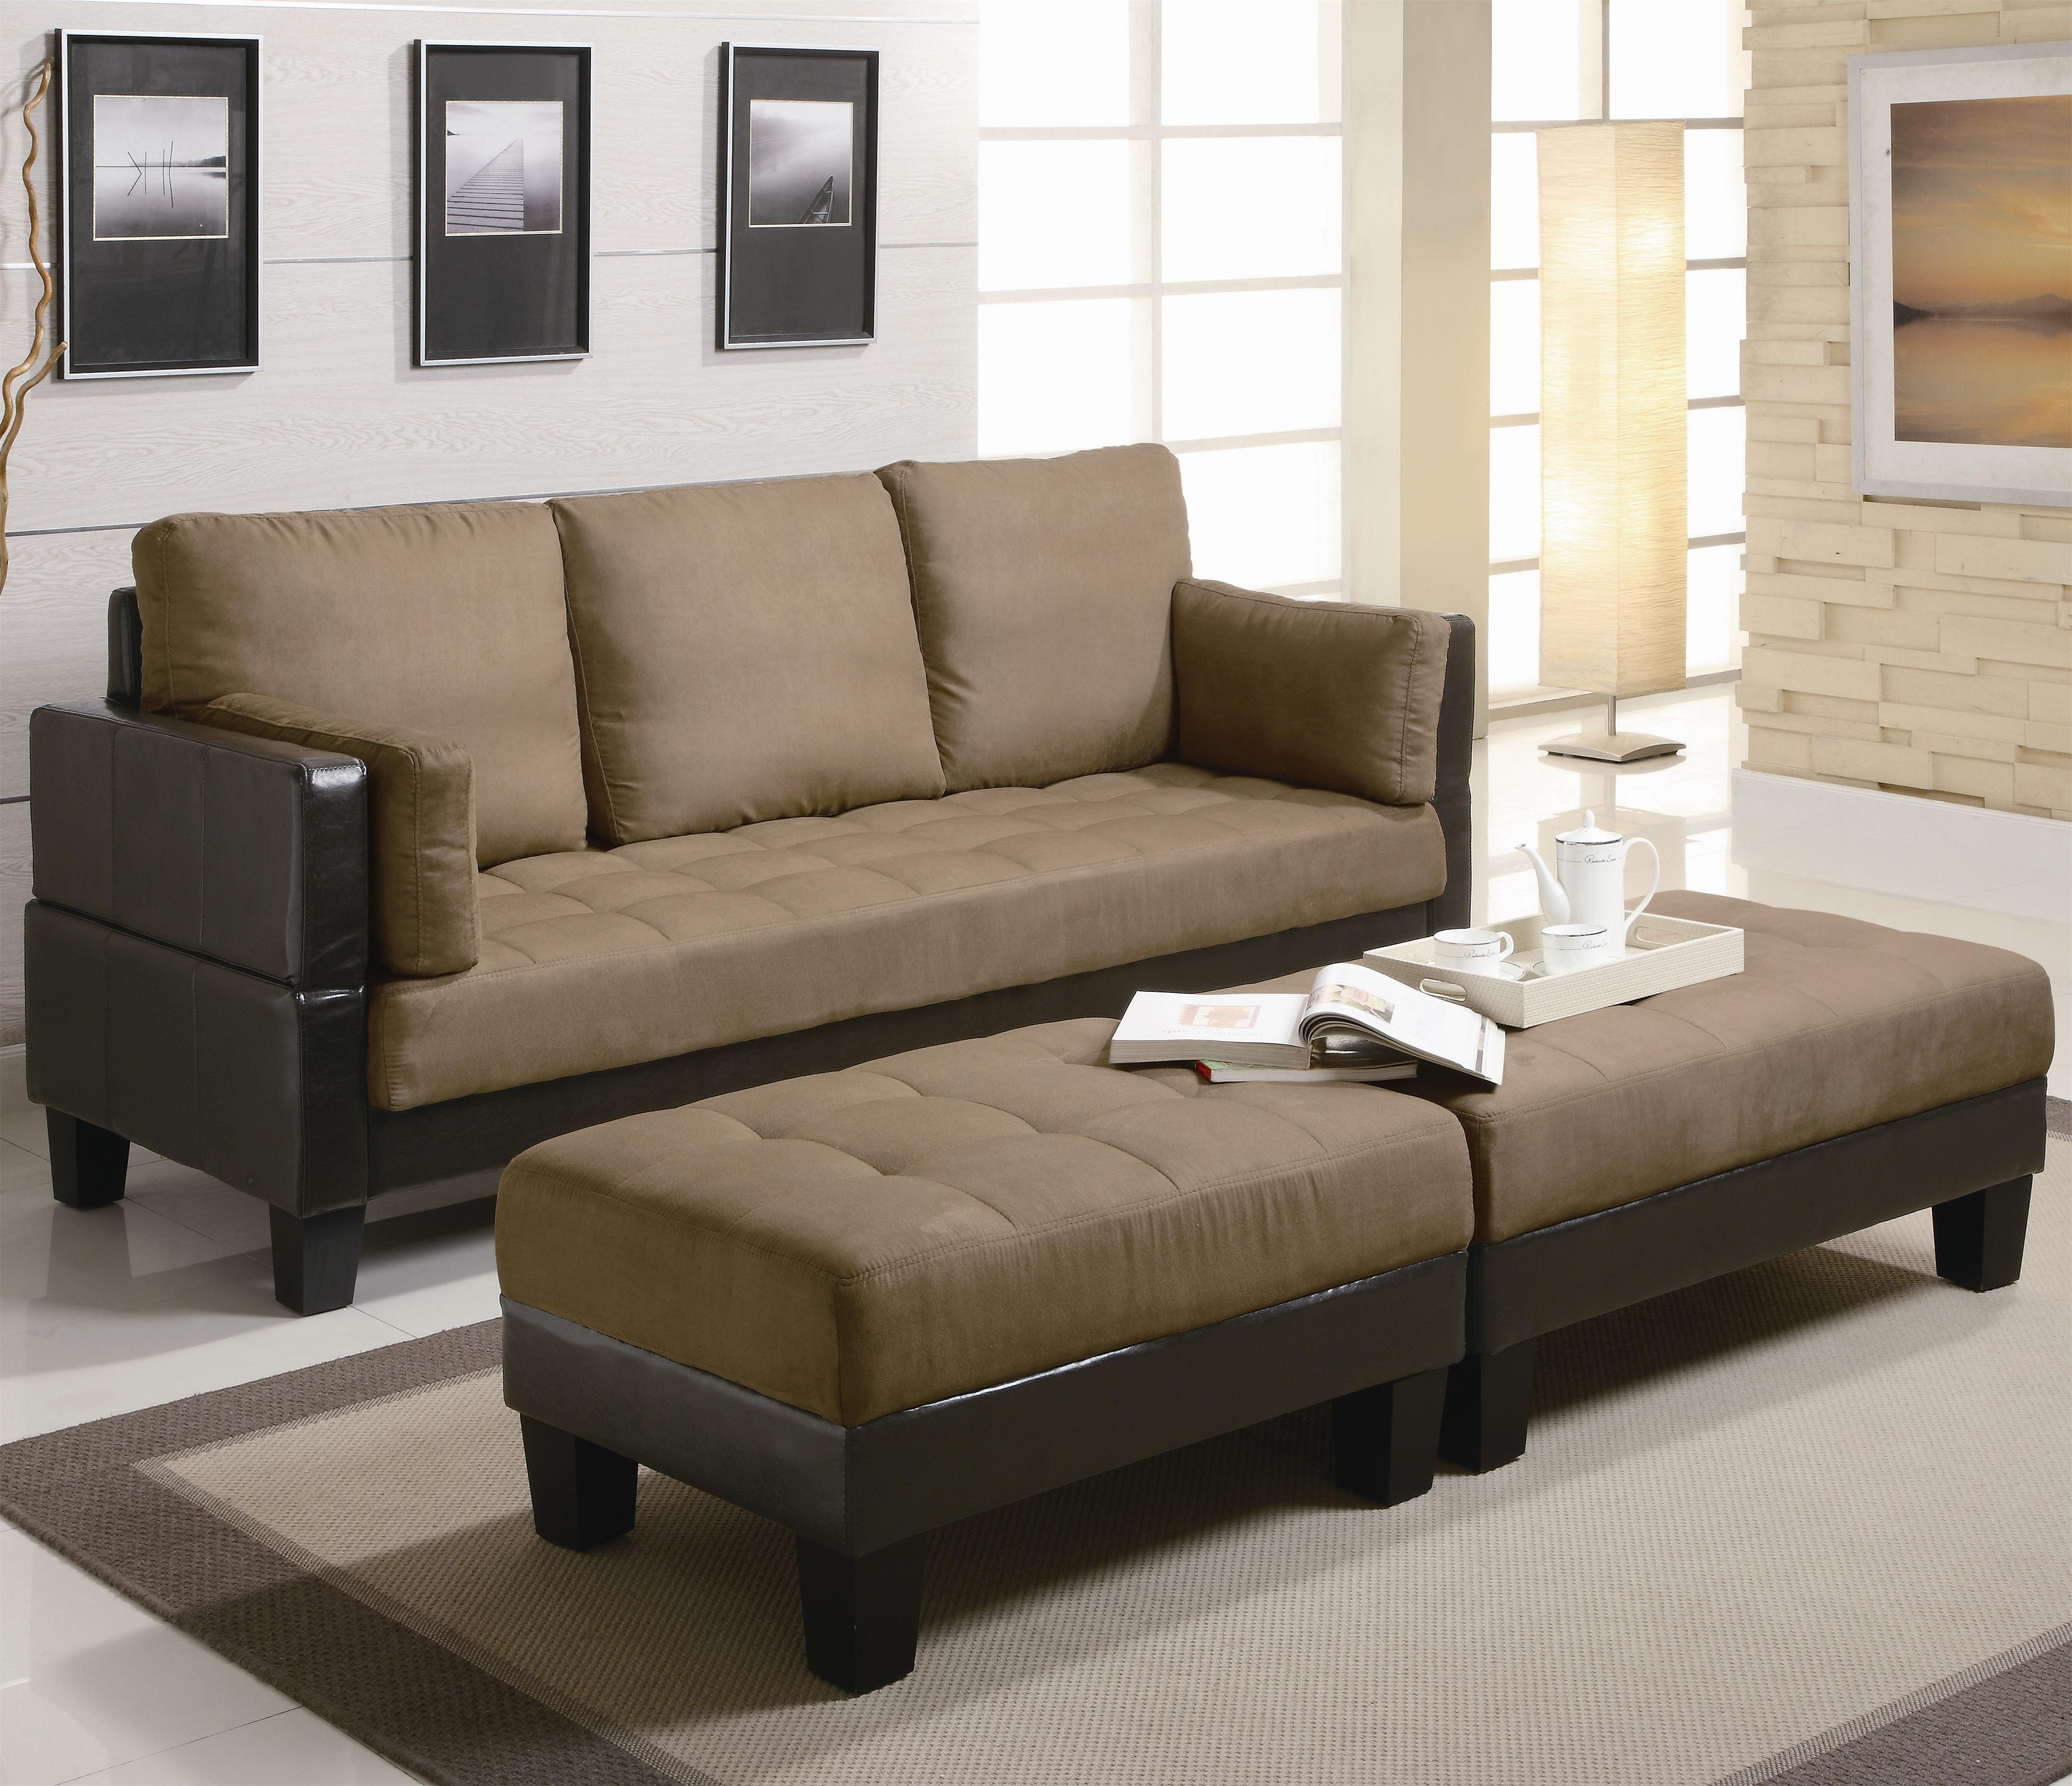 Remarkable Ellesmere Contemporary Sofa Bed Group With 2 Ottomans By Coaster At Charleston Furniture Machost Co Dining Chair Design Ideas Machostcouk